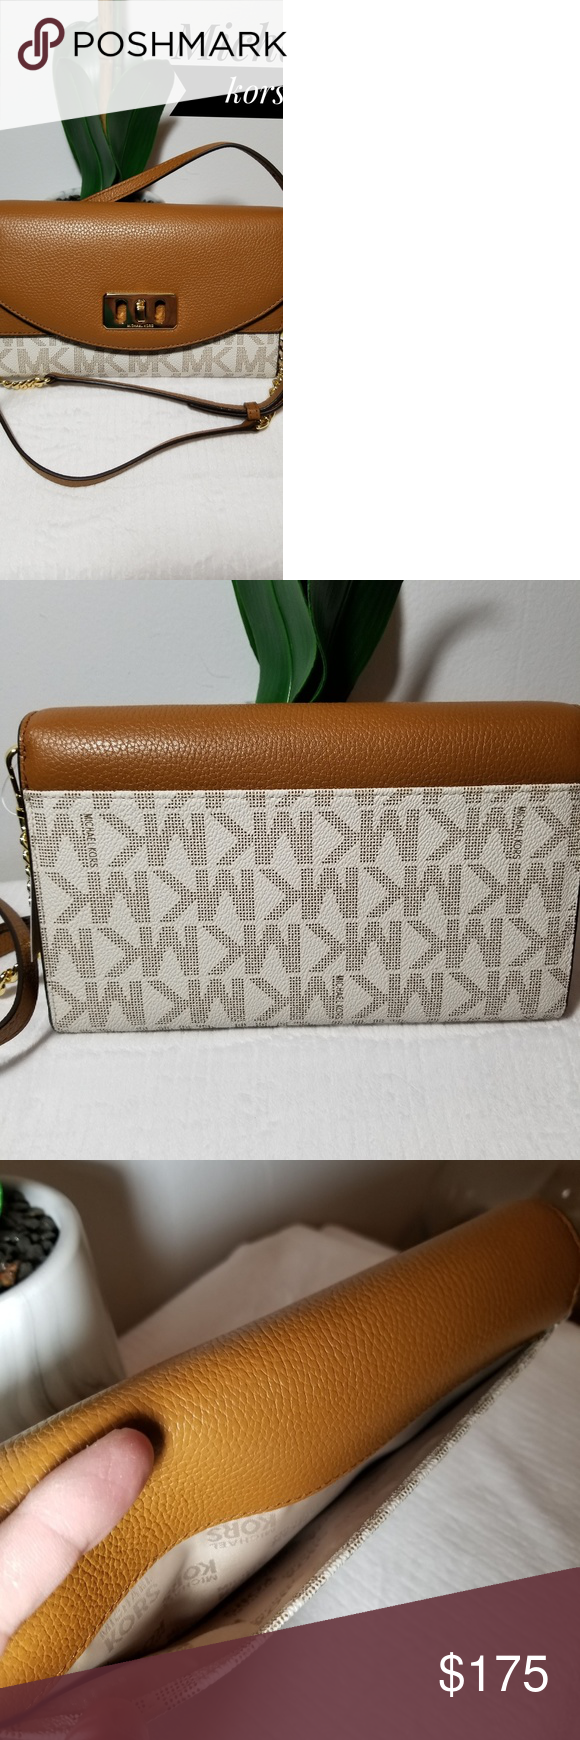 04ed7849bf7b02 Michael kors karson travel wallet clutch, crossbod Michael kors karson  travel wallet clutch crossbody.